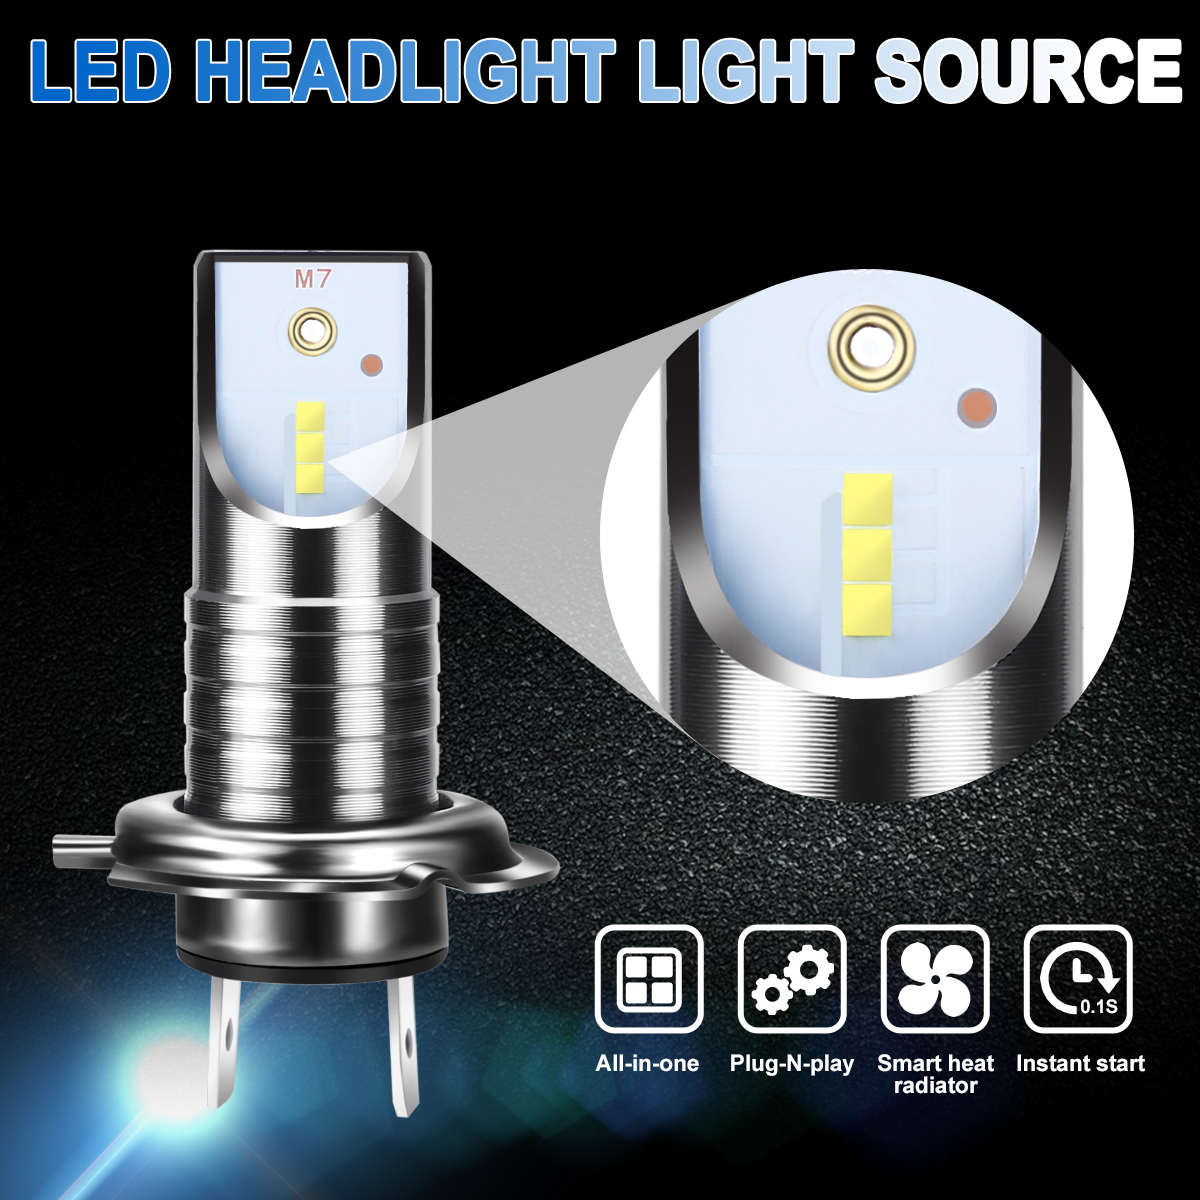 2pcs H7 LED Car Headlight Bulb 110W 13000LM 6000K 32V Canbus Error Free Bulb White Headlamp For BMW For Audi For Hyundai in Car Headlight Bulbs LED from Automobiles Motorcycles